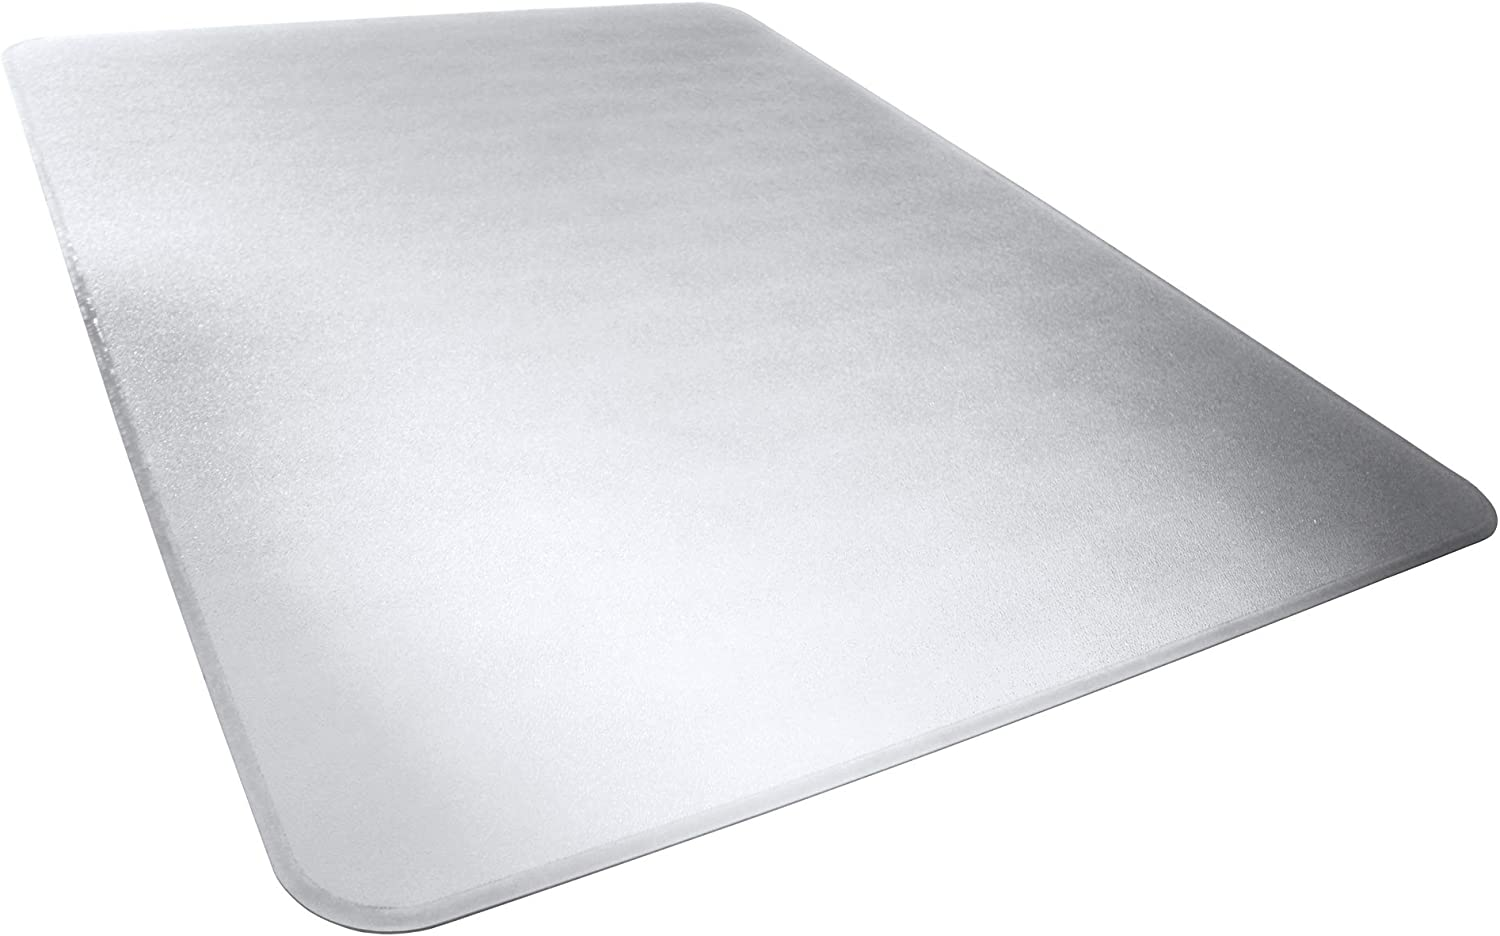 AmazonBasics Polycarbonate Heavy Duty Chair Mat for Carpets Hard Floors – 46 x 60